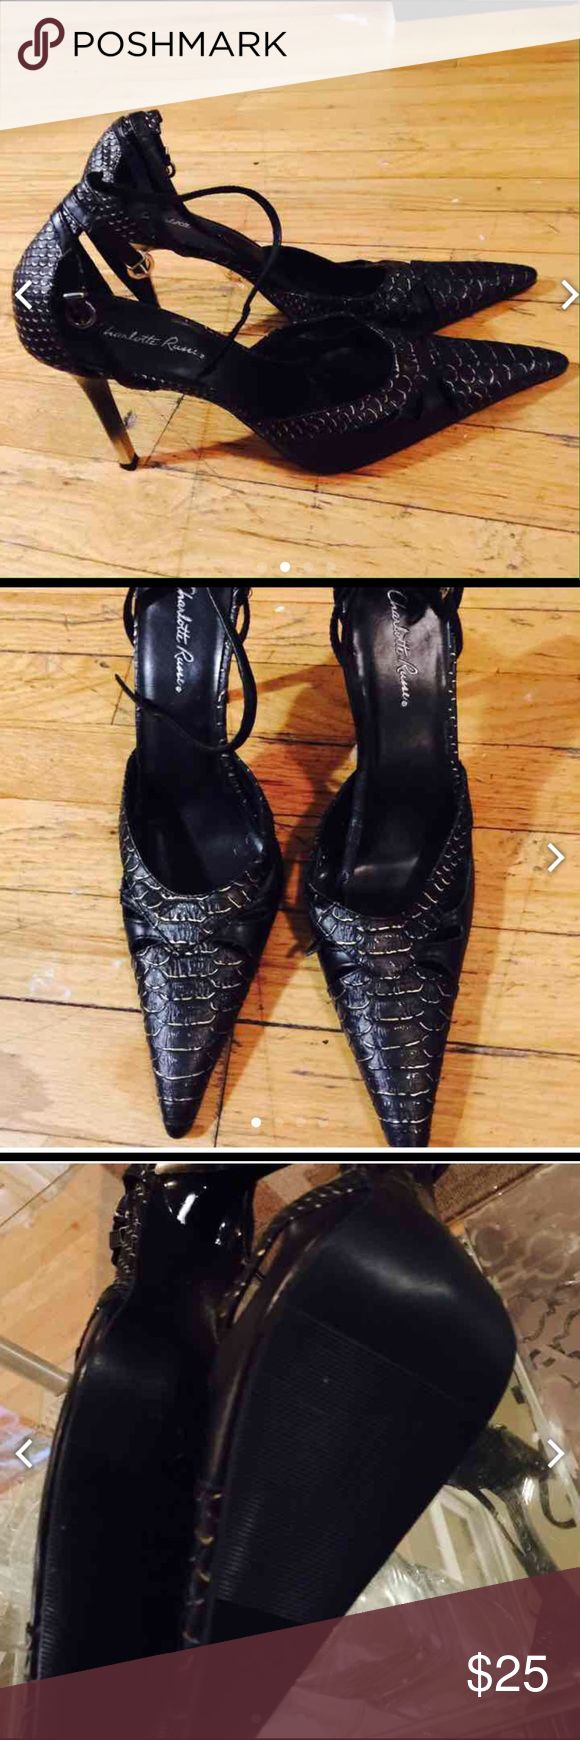 Charlotte rouse snakeskin pumps Black snake skin Patent with an ankle strap . Charlotte Russe Shoes Heels